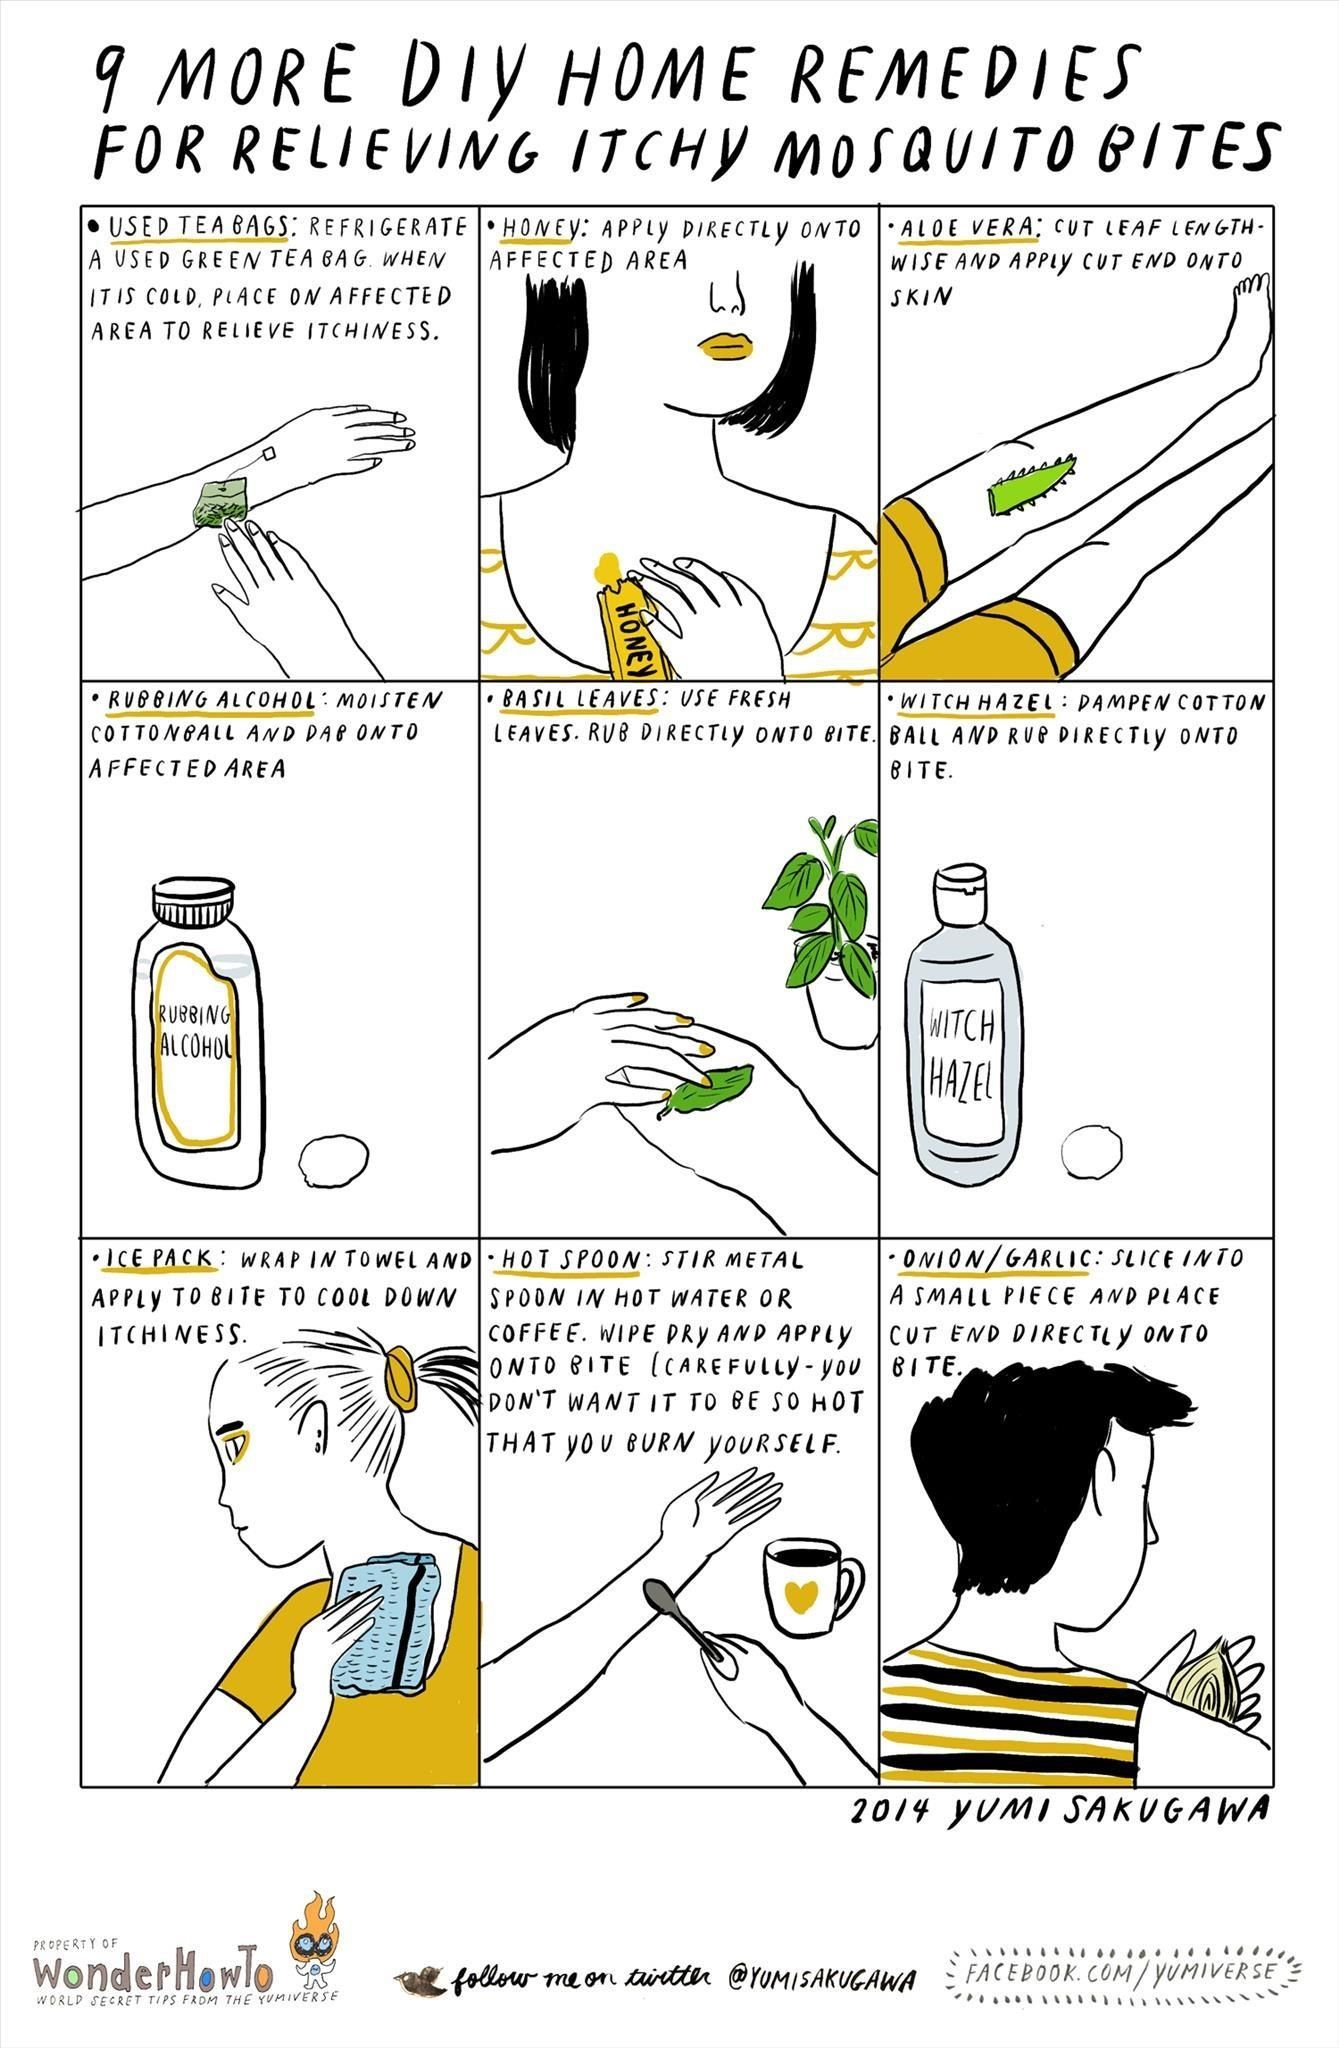 Folk remedies for mosquitoes